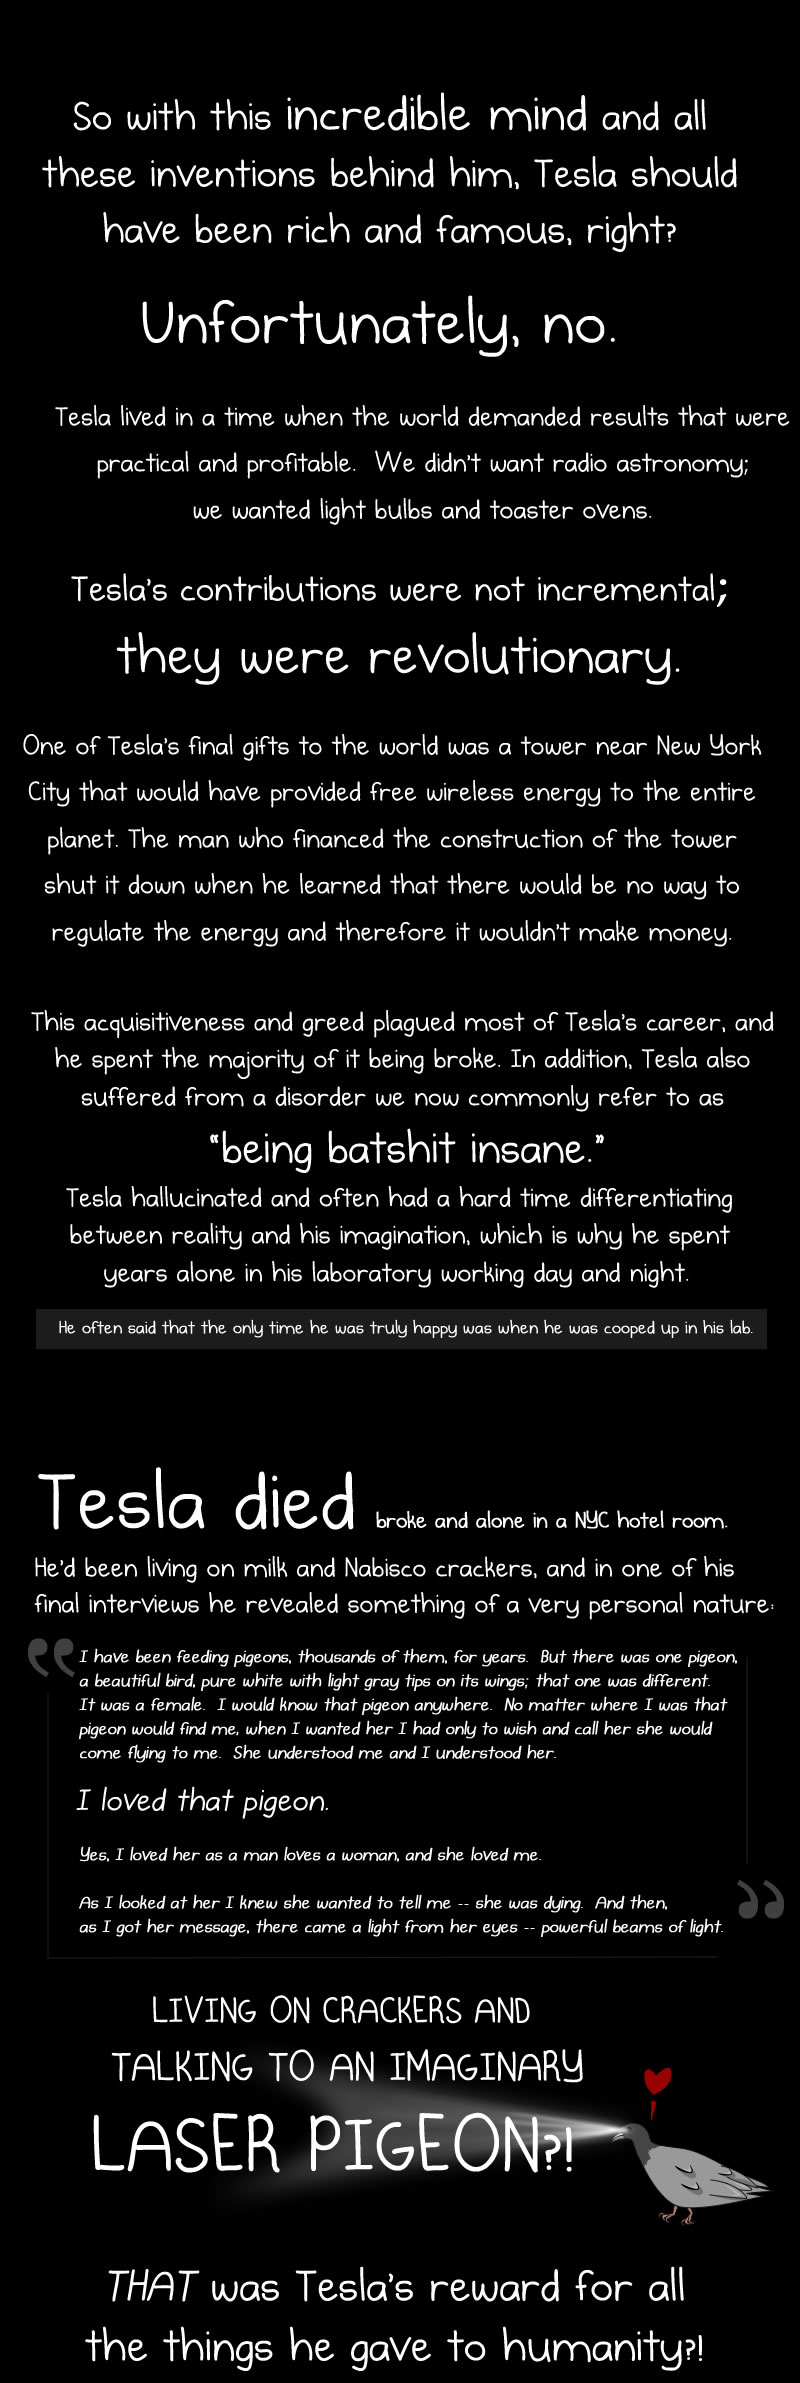 http://s3.amazonaws.com/theoatmeal-img/comics/tesla/9.jpg